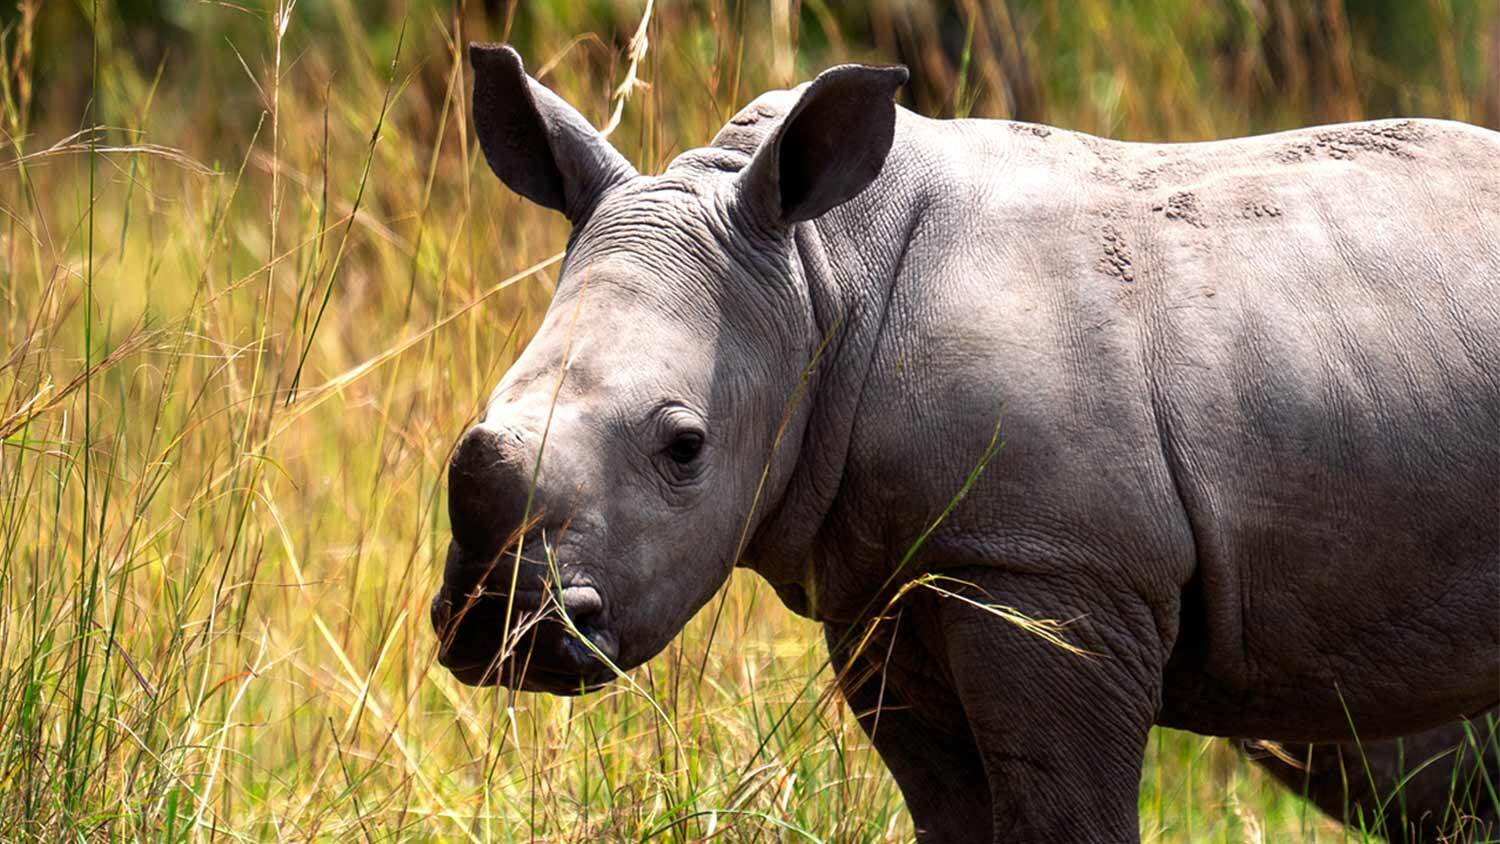 An Endangered Baby Black Rhinoceros In the Time of COVID-19